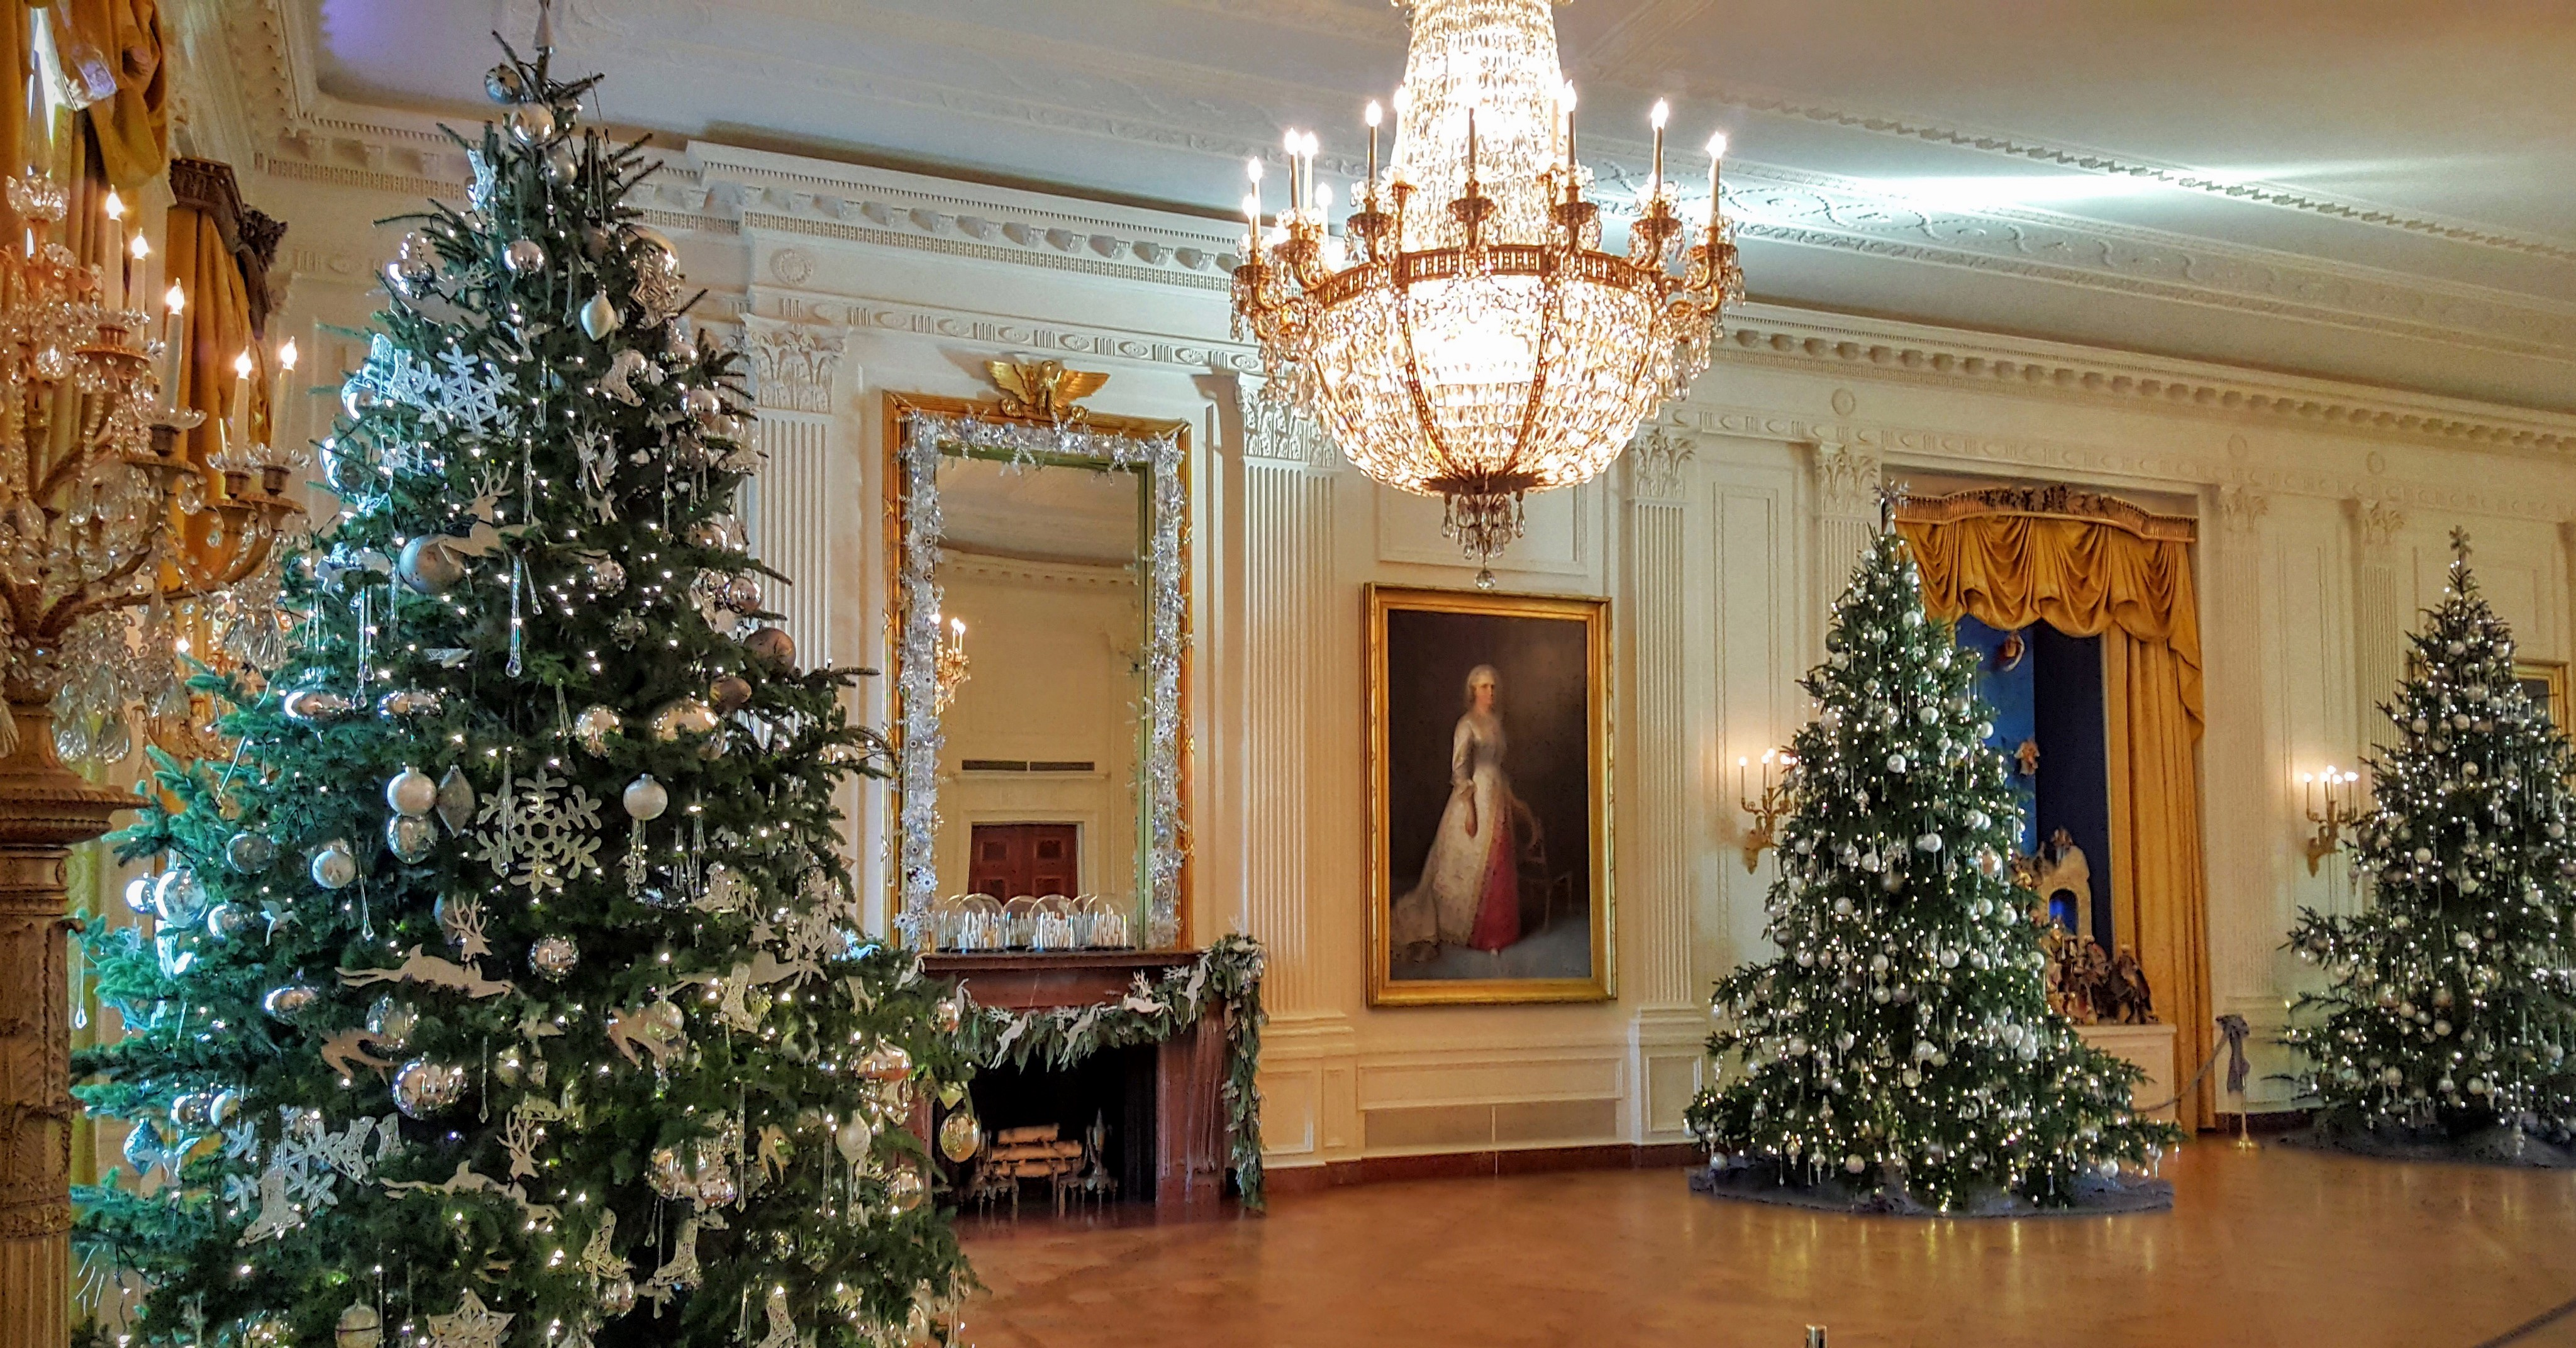 Holidays At The White House Huffpost